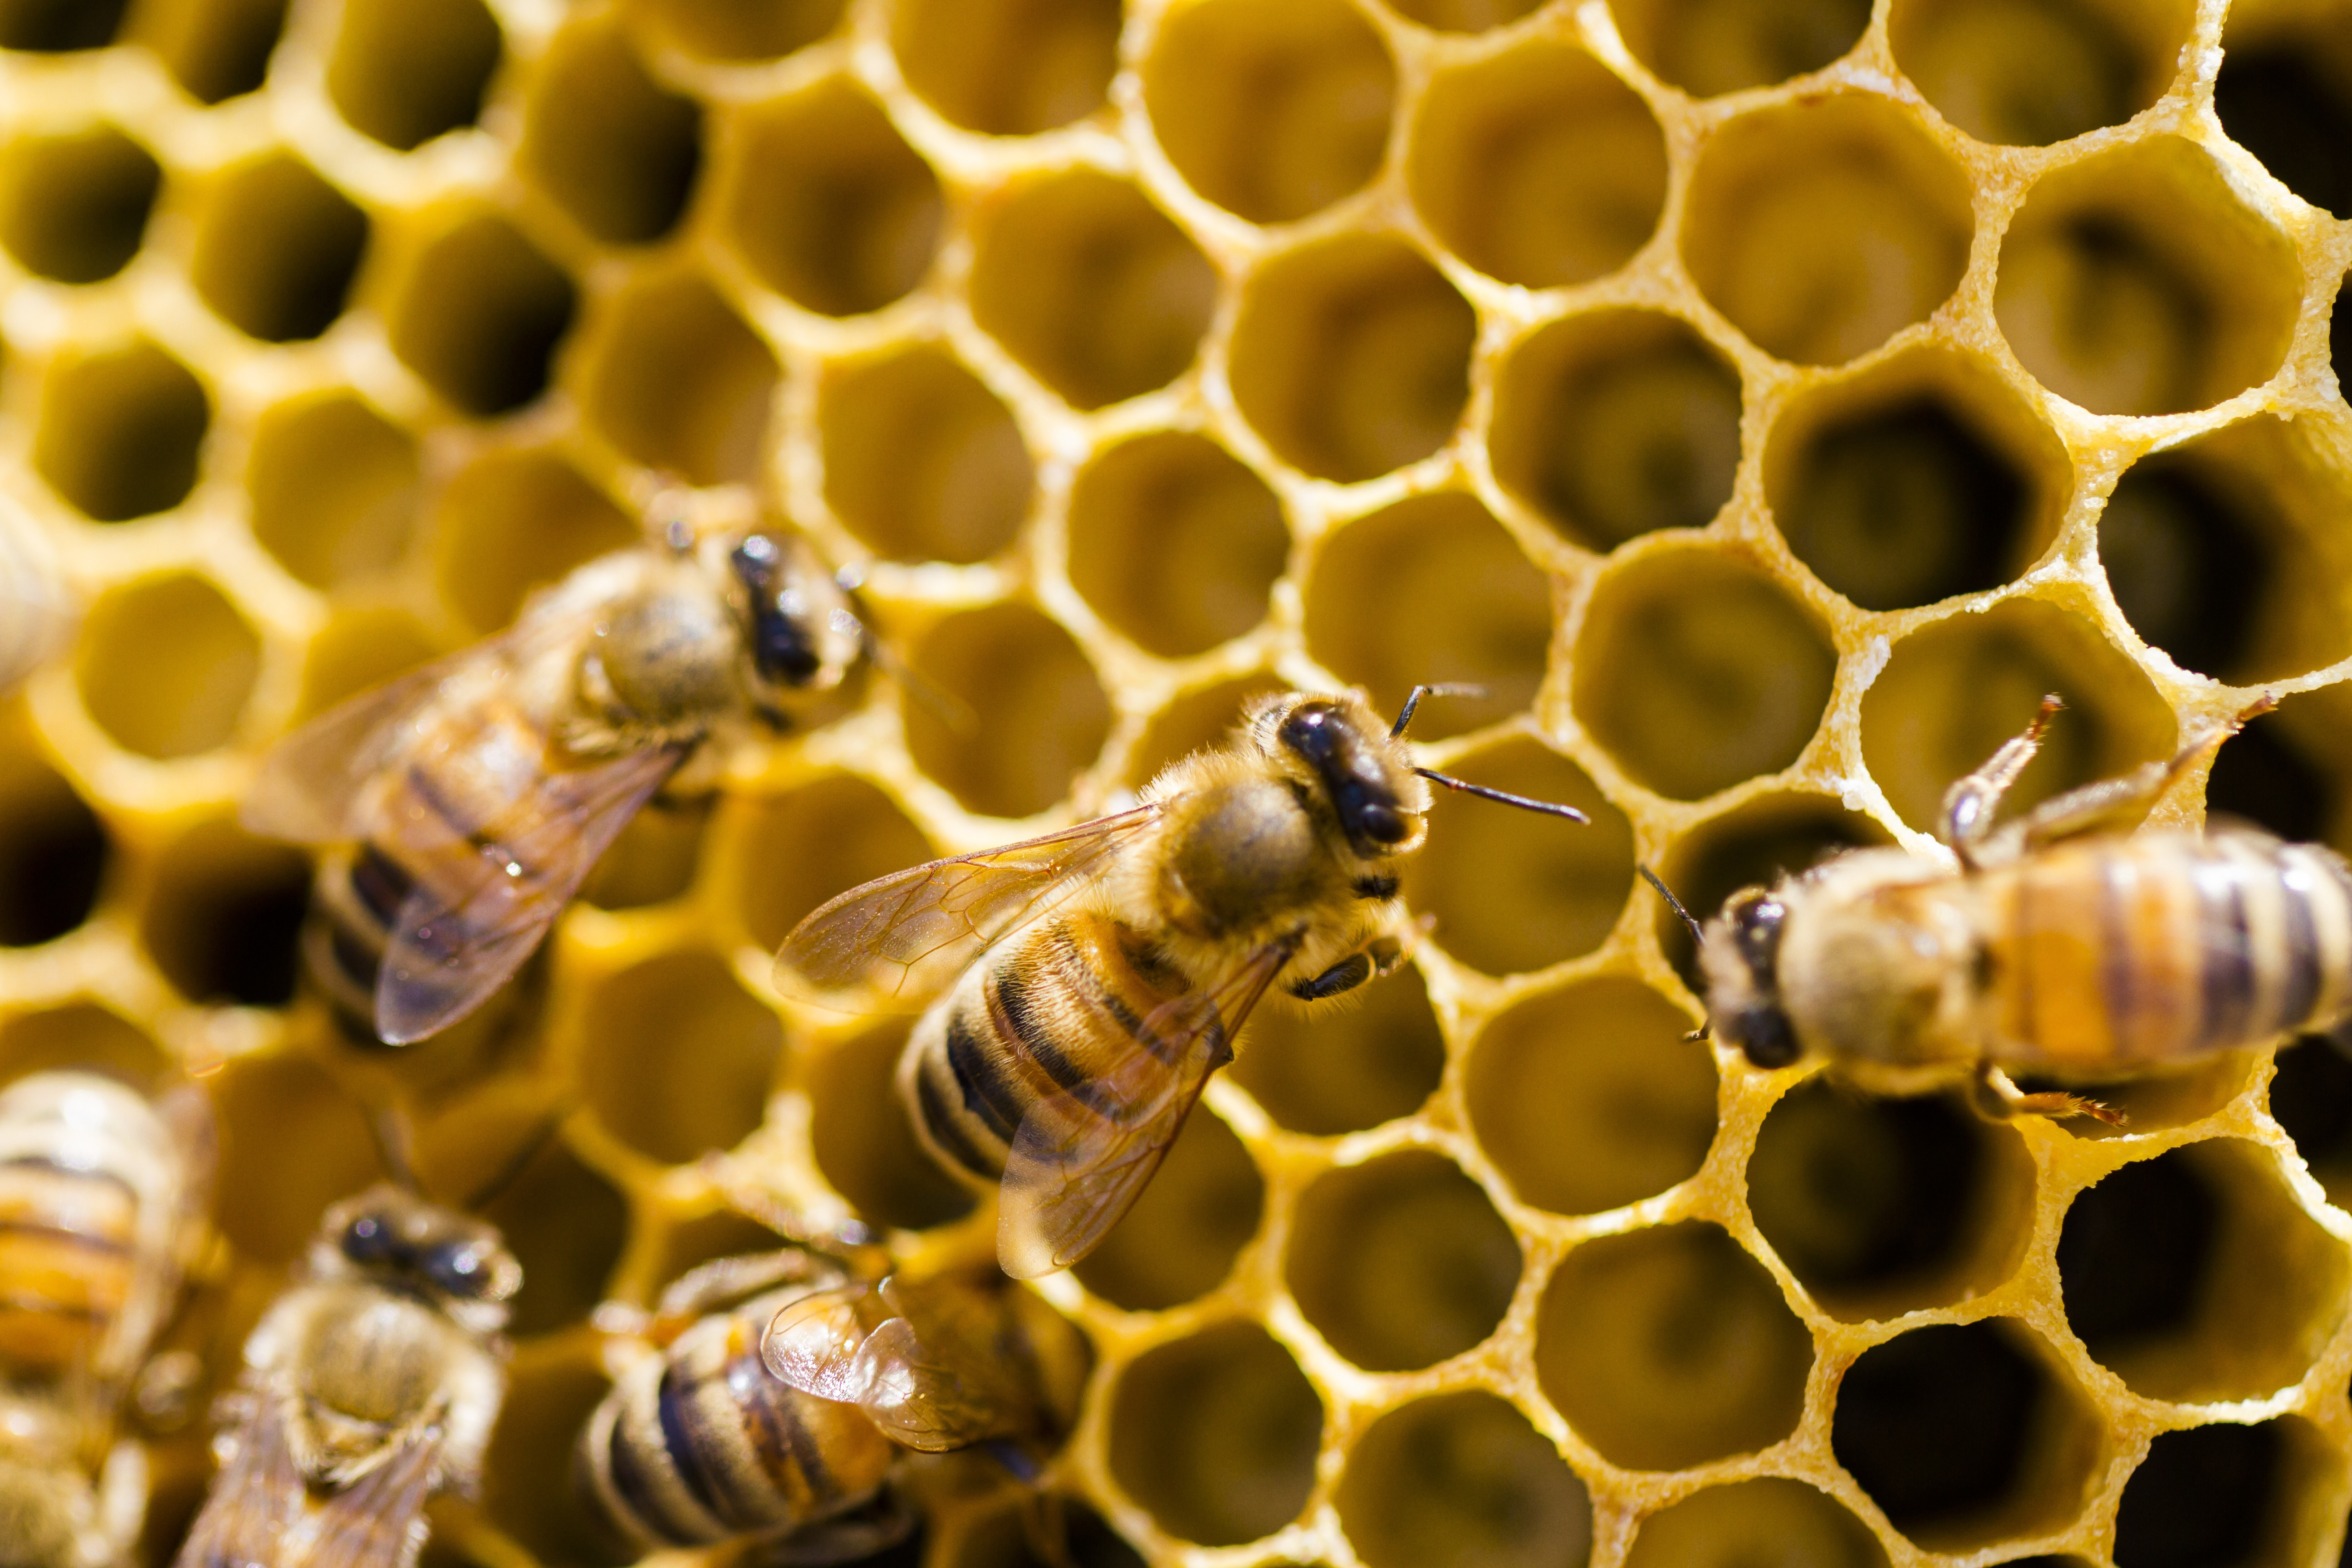 COLONY COLLAPSE DISORDER: A Cautionary Tale for Chemical Termite Treatment in New Building Construction